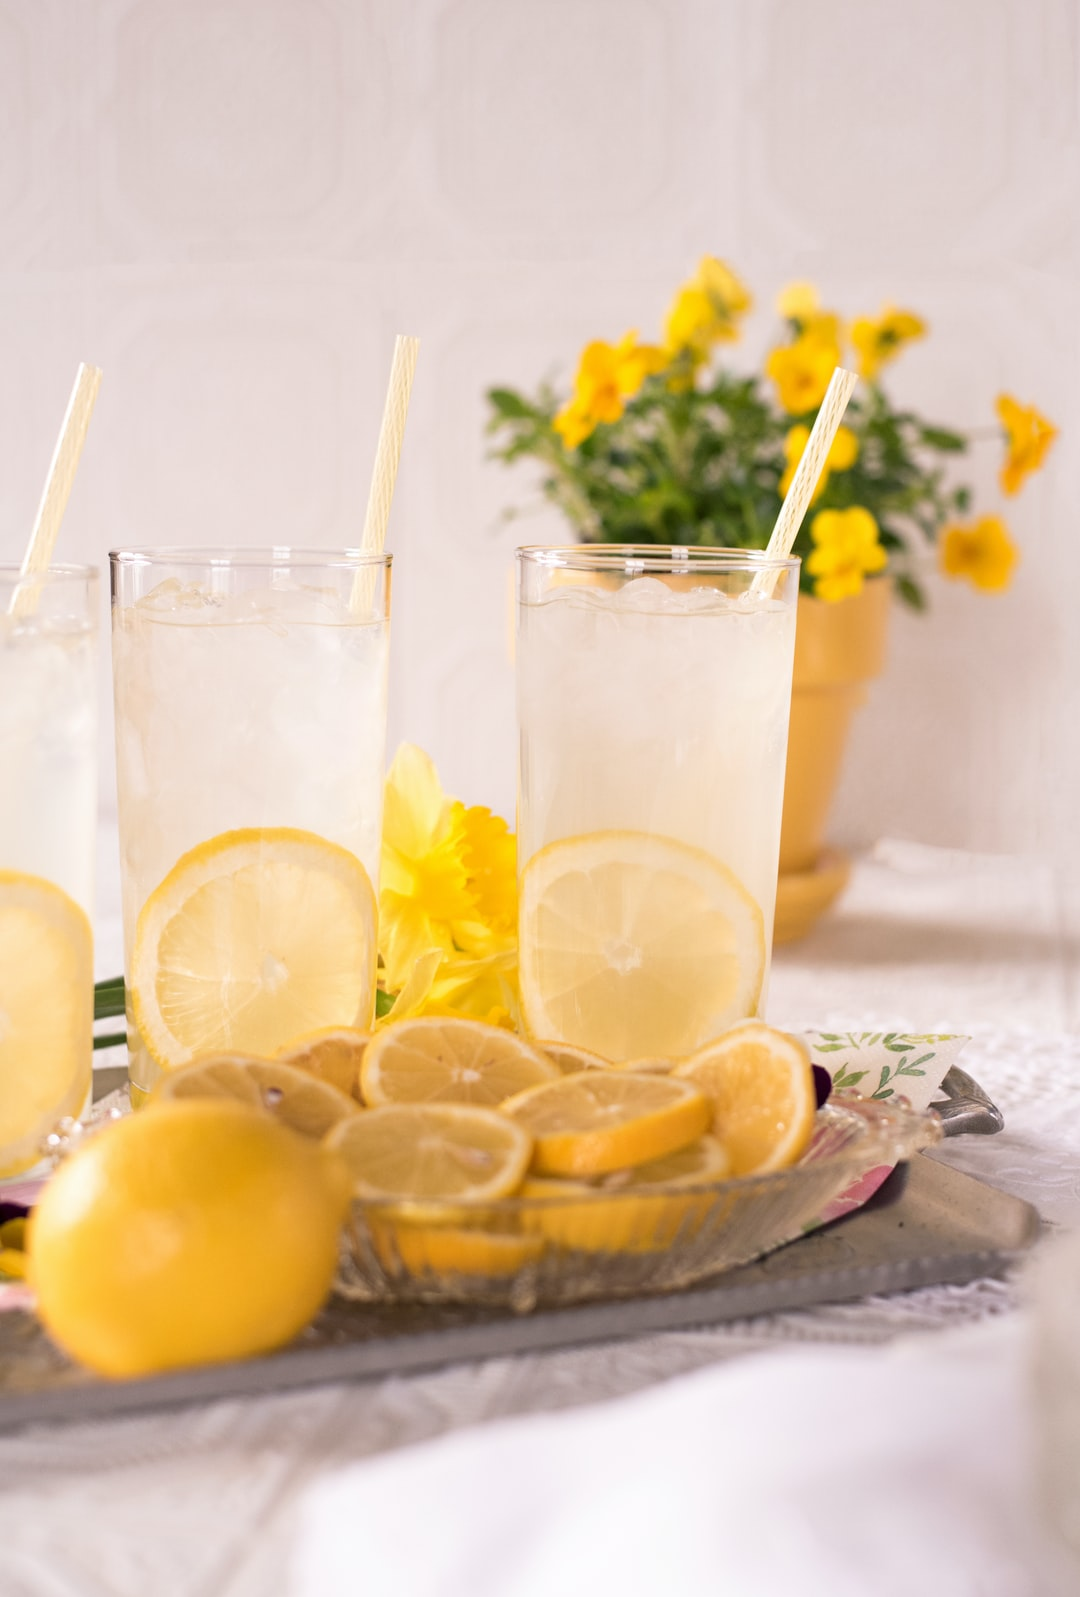 This tray of lemonade was part of a larger setup for a Lemon Blueberry Cake shoot. The lemonade was so pretty I had to take a shot of it by itself!